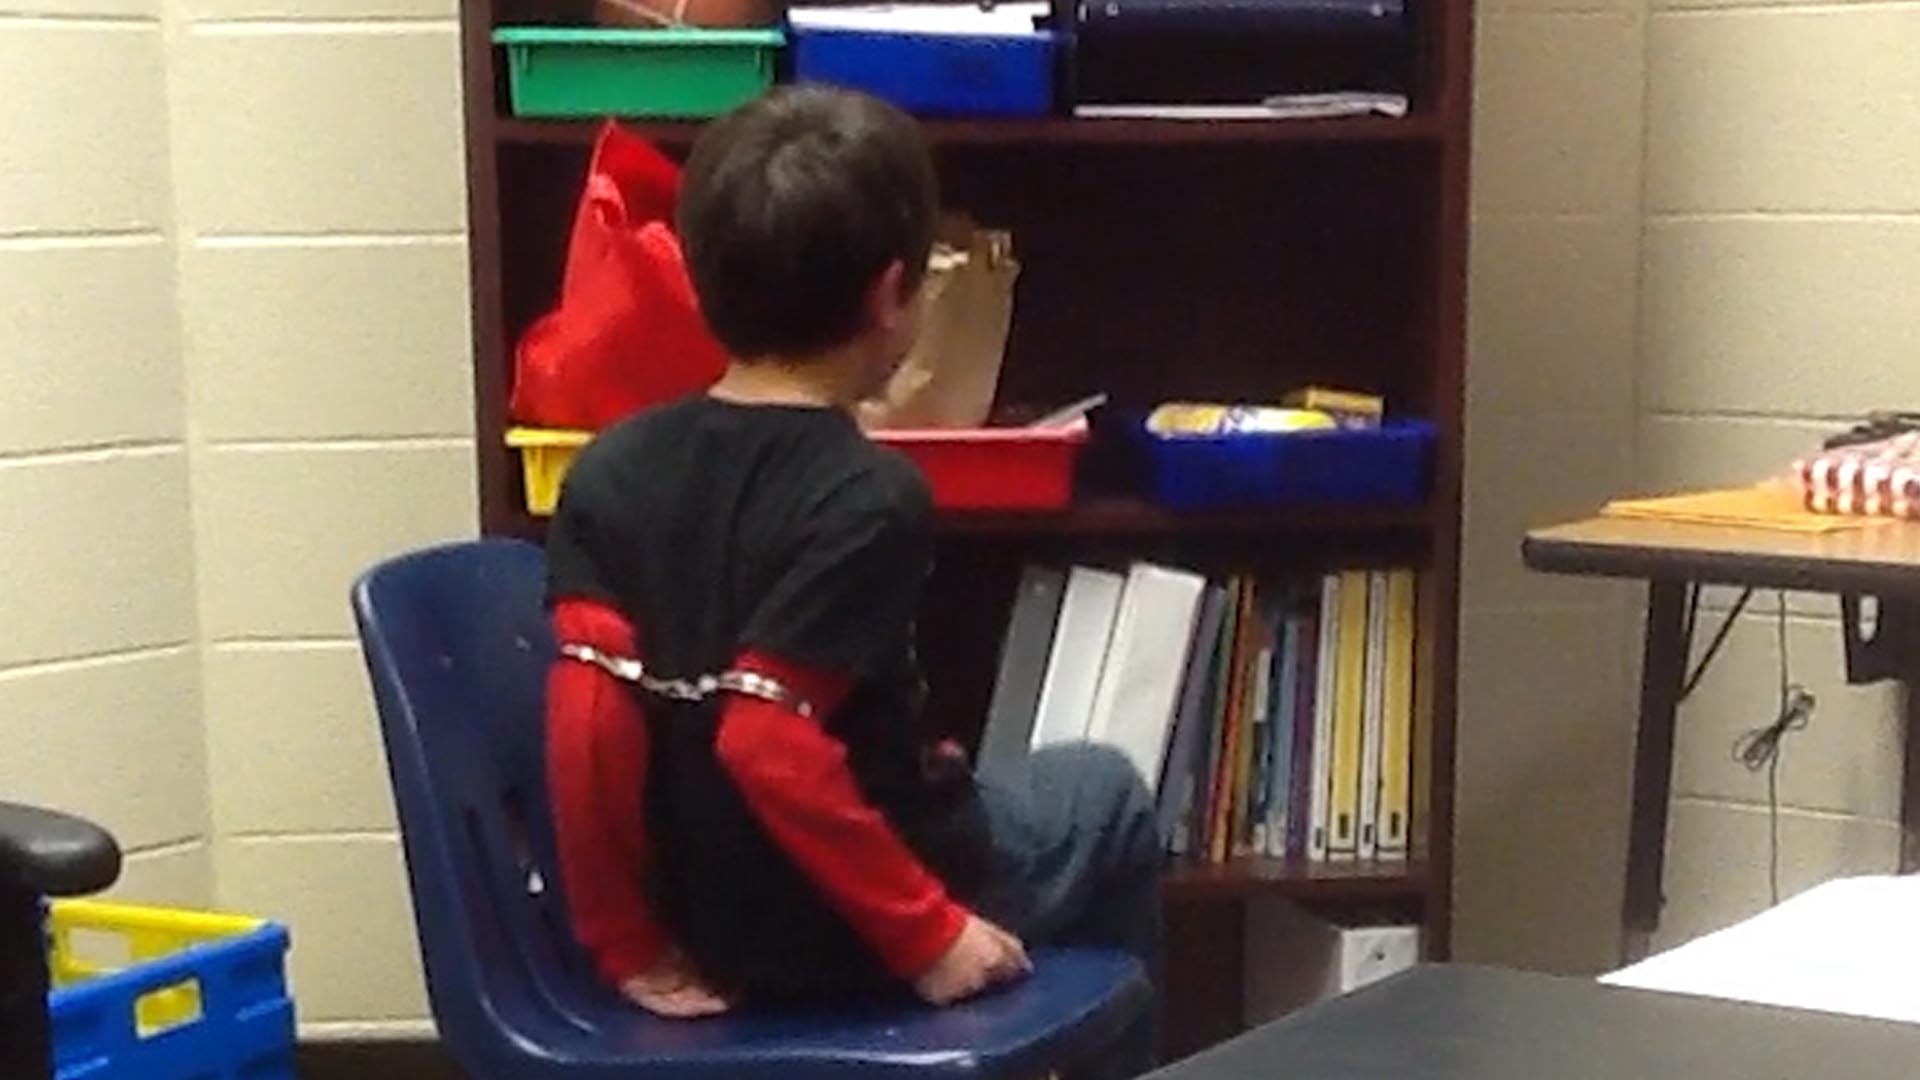 Third-Grader Handcuffed in School